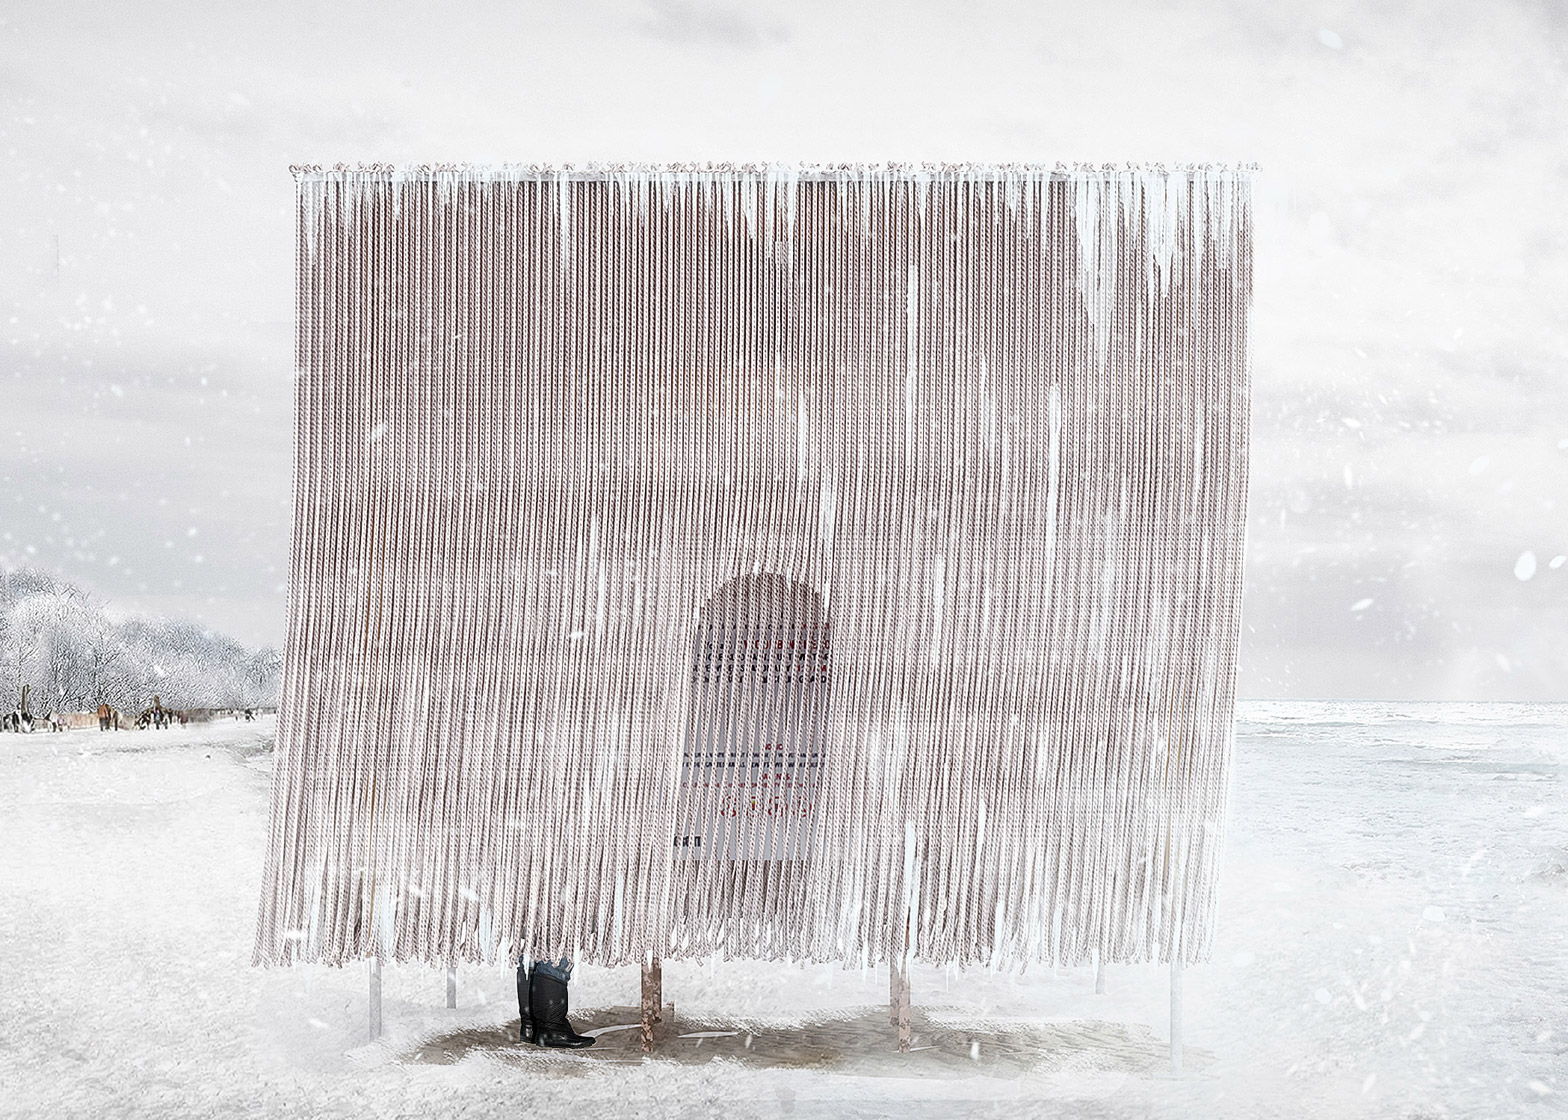 Floating Ropes by Elodie Doukhan and Nicolas Mussche of MUDO